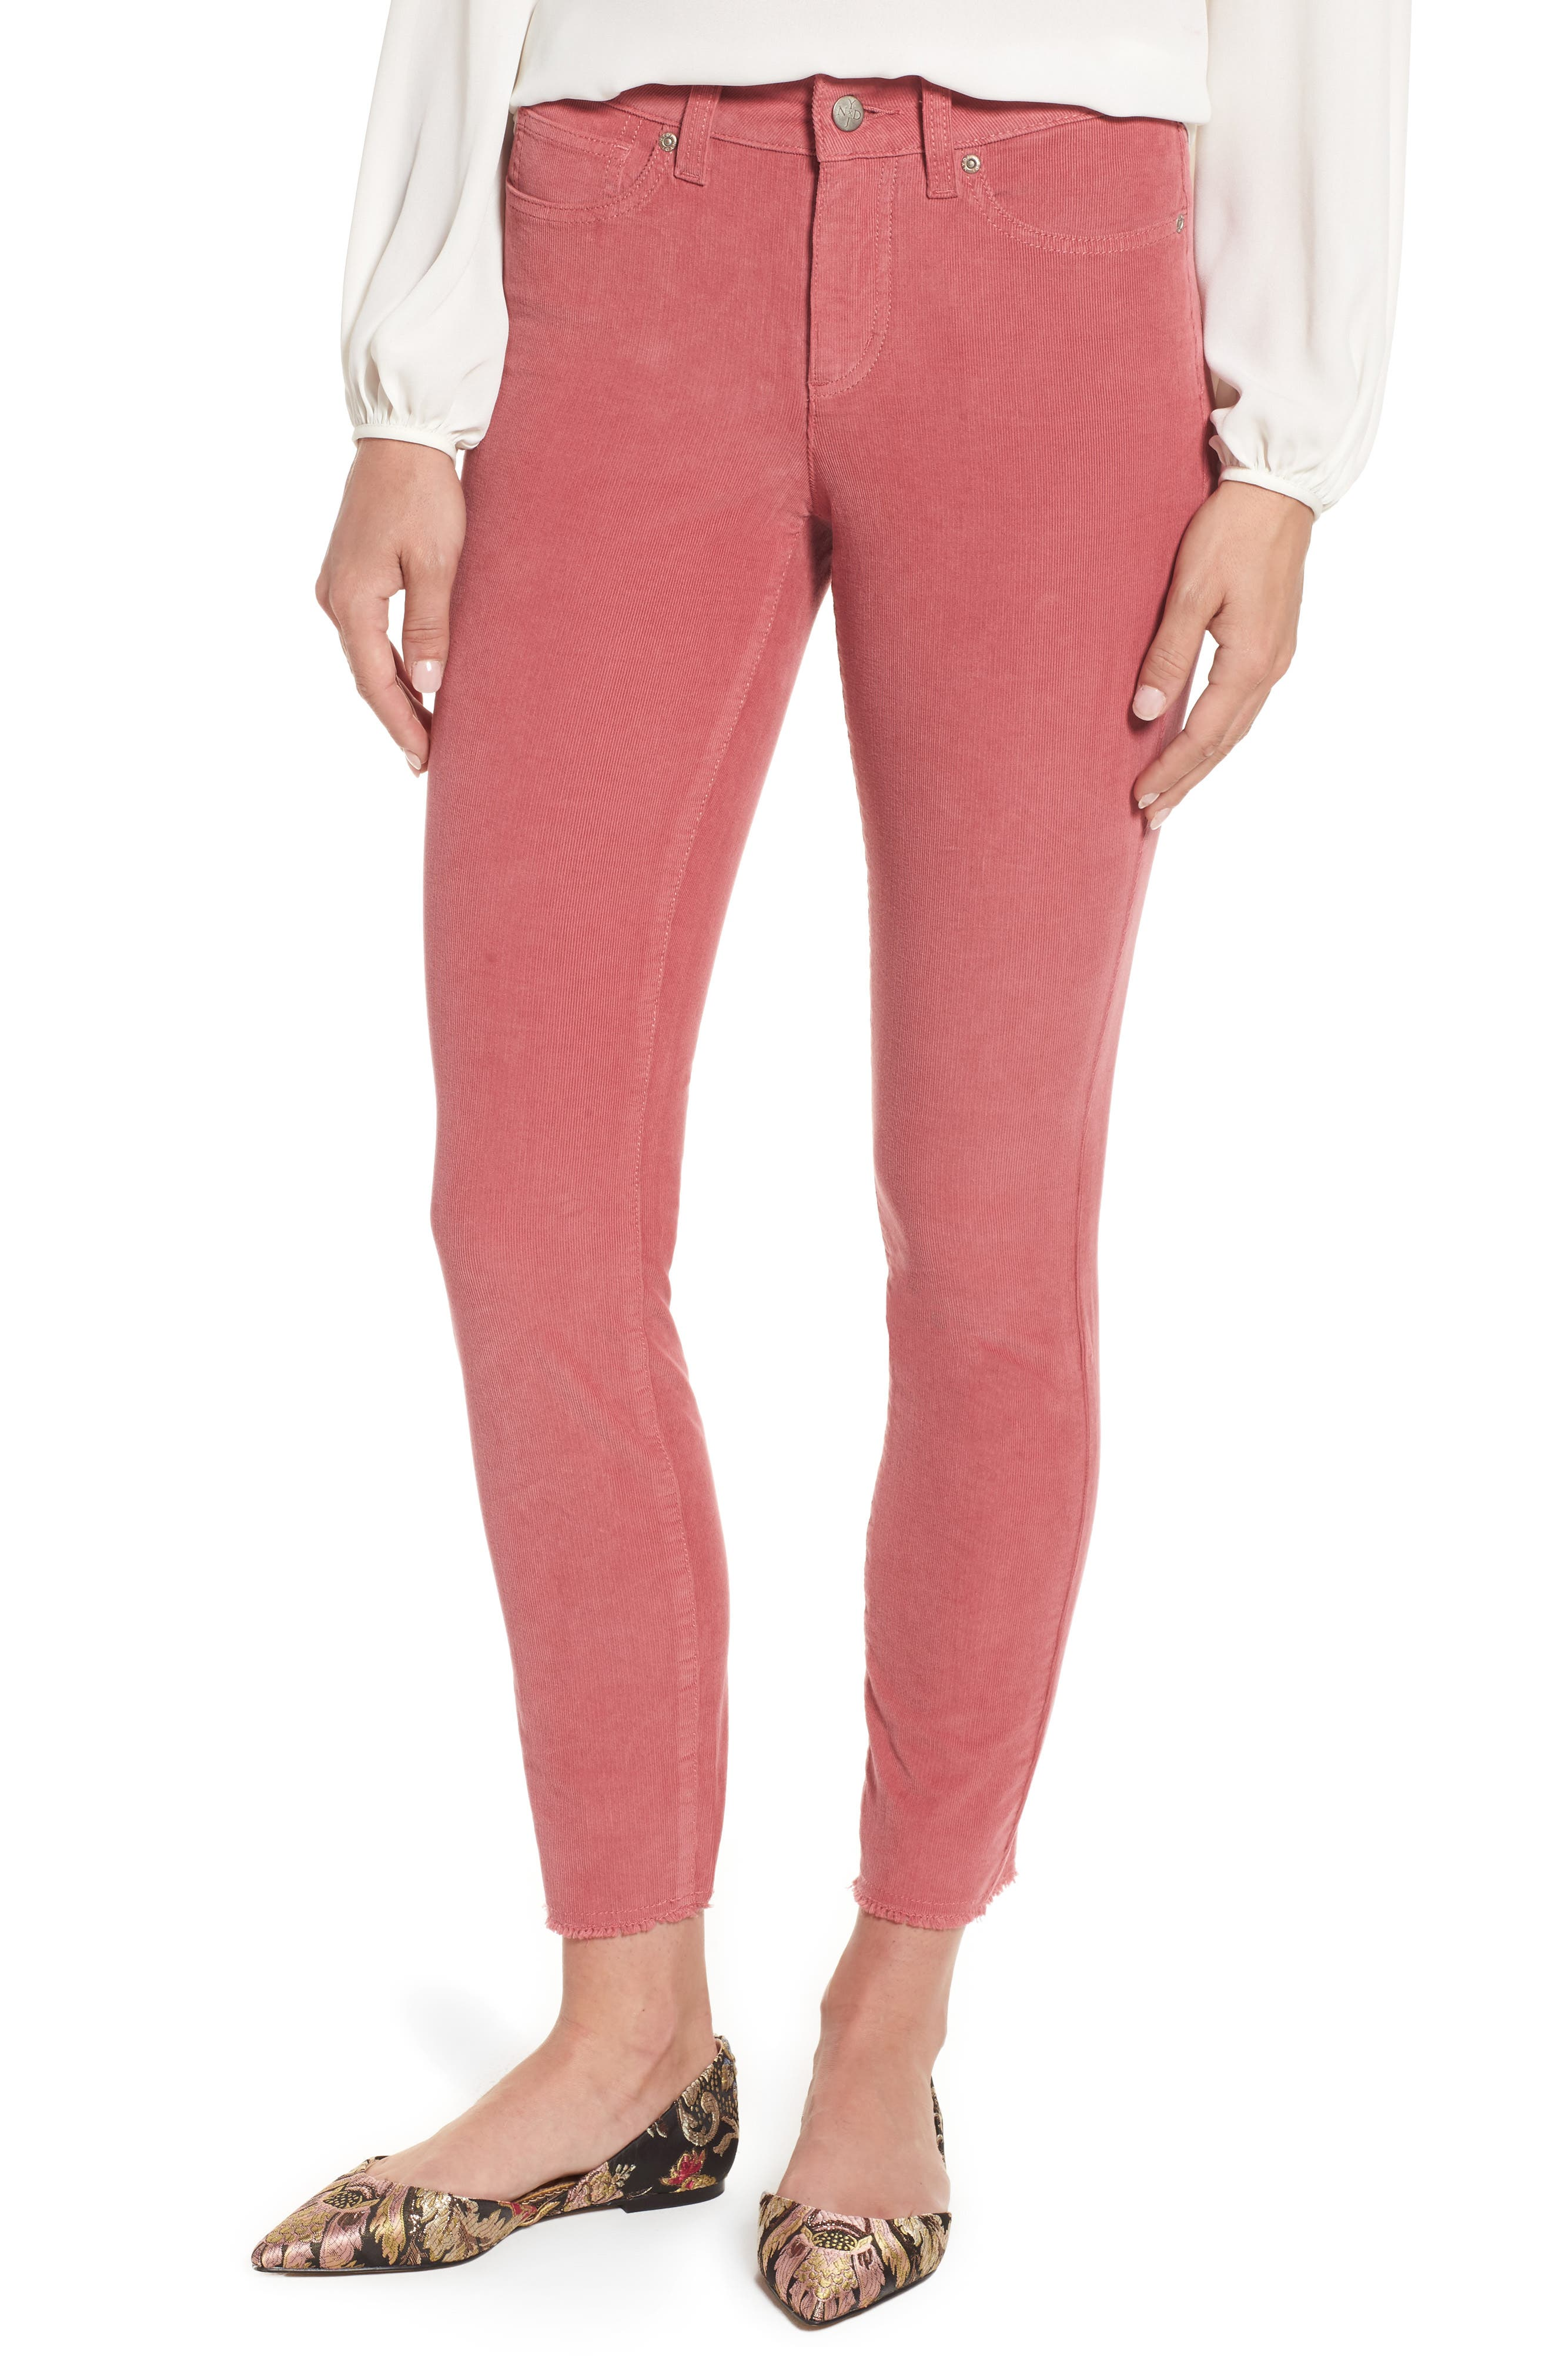 Alternate Image 1 Selected - NYDJ Alina Frayed Stretch Corduroy Ankle Jeans